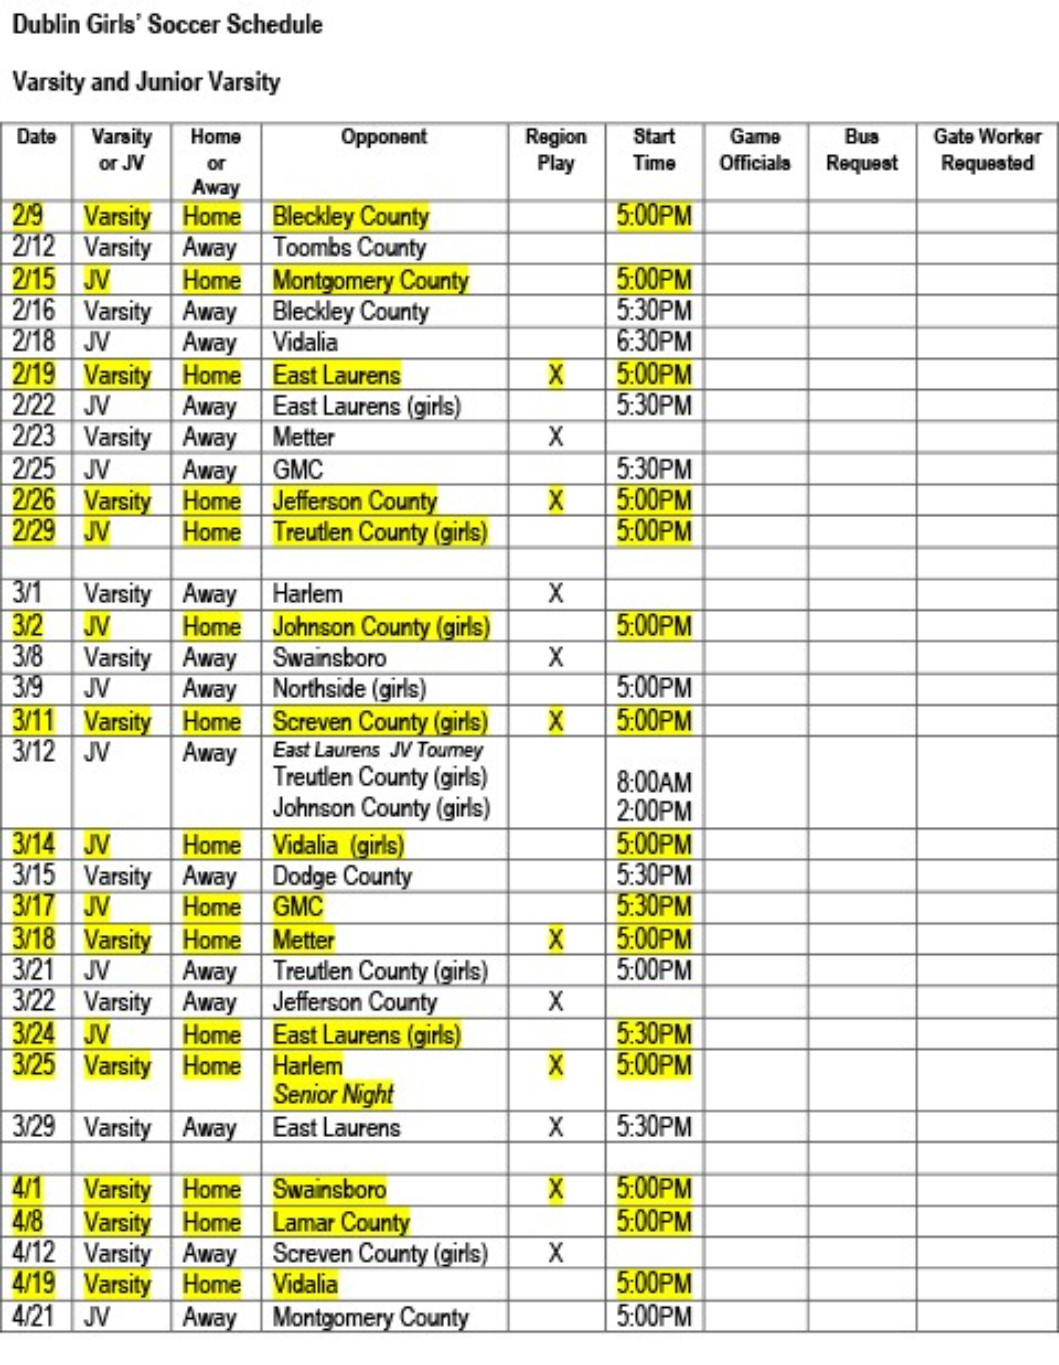 DHS RELEASES 2016 SOCCER SCHEDULE